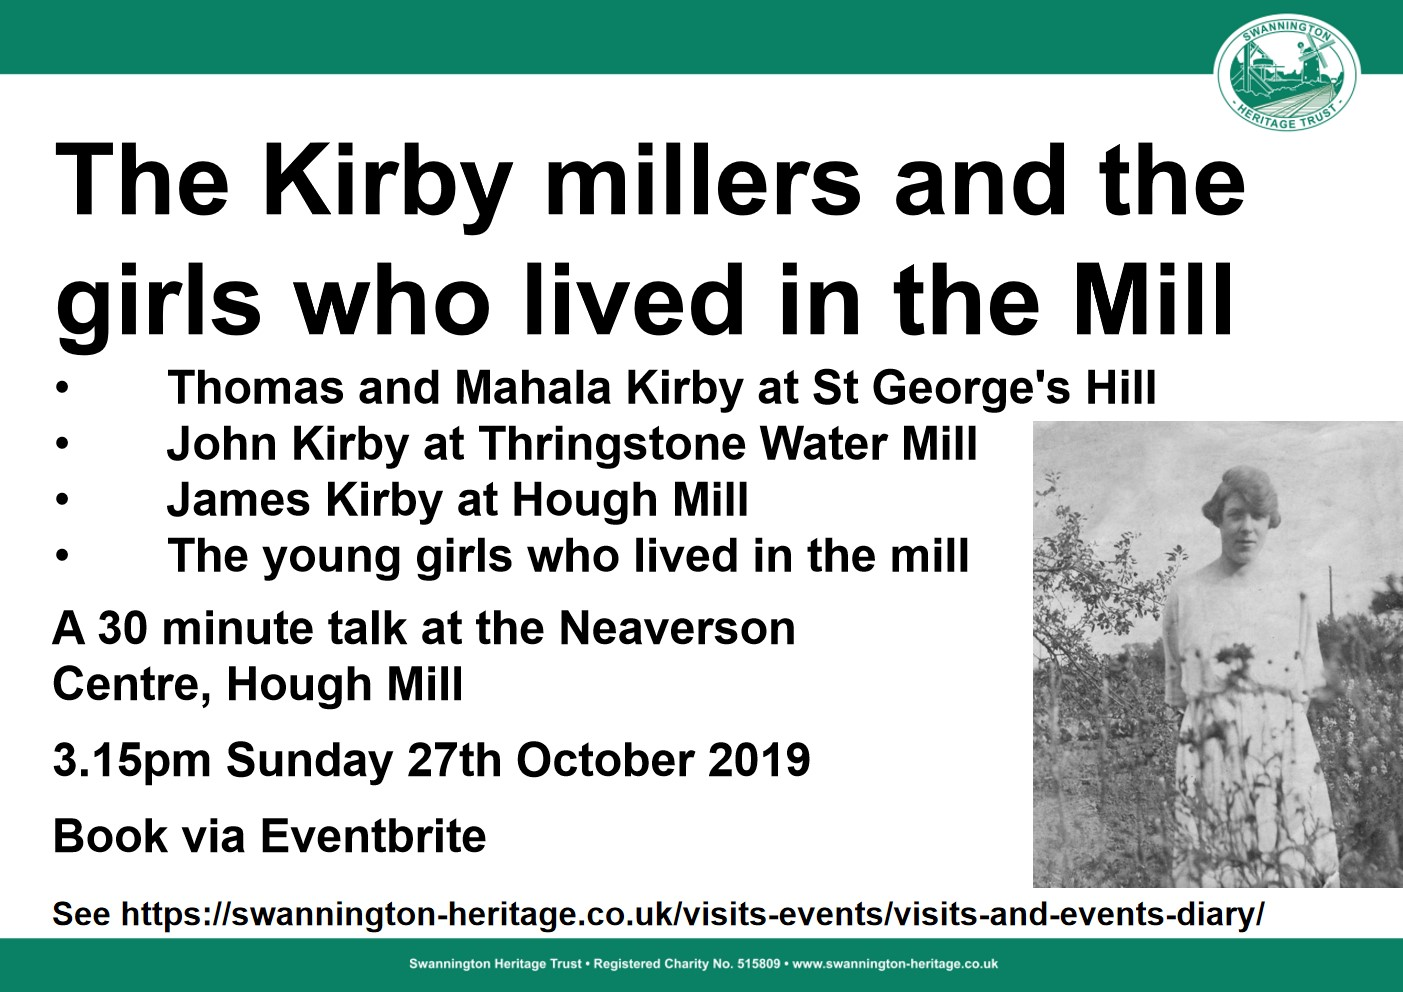 Talk on the Kirby millers who took over from the Griffin family